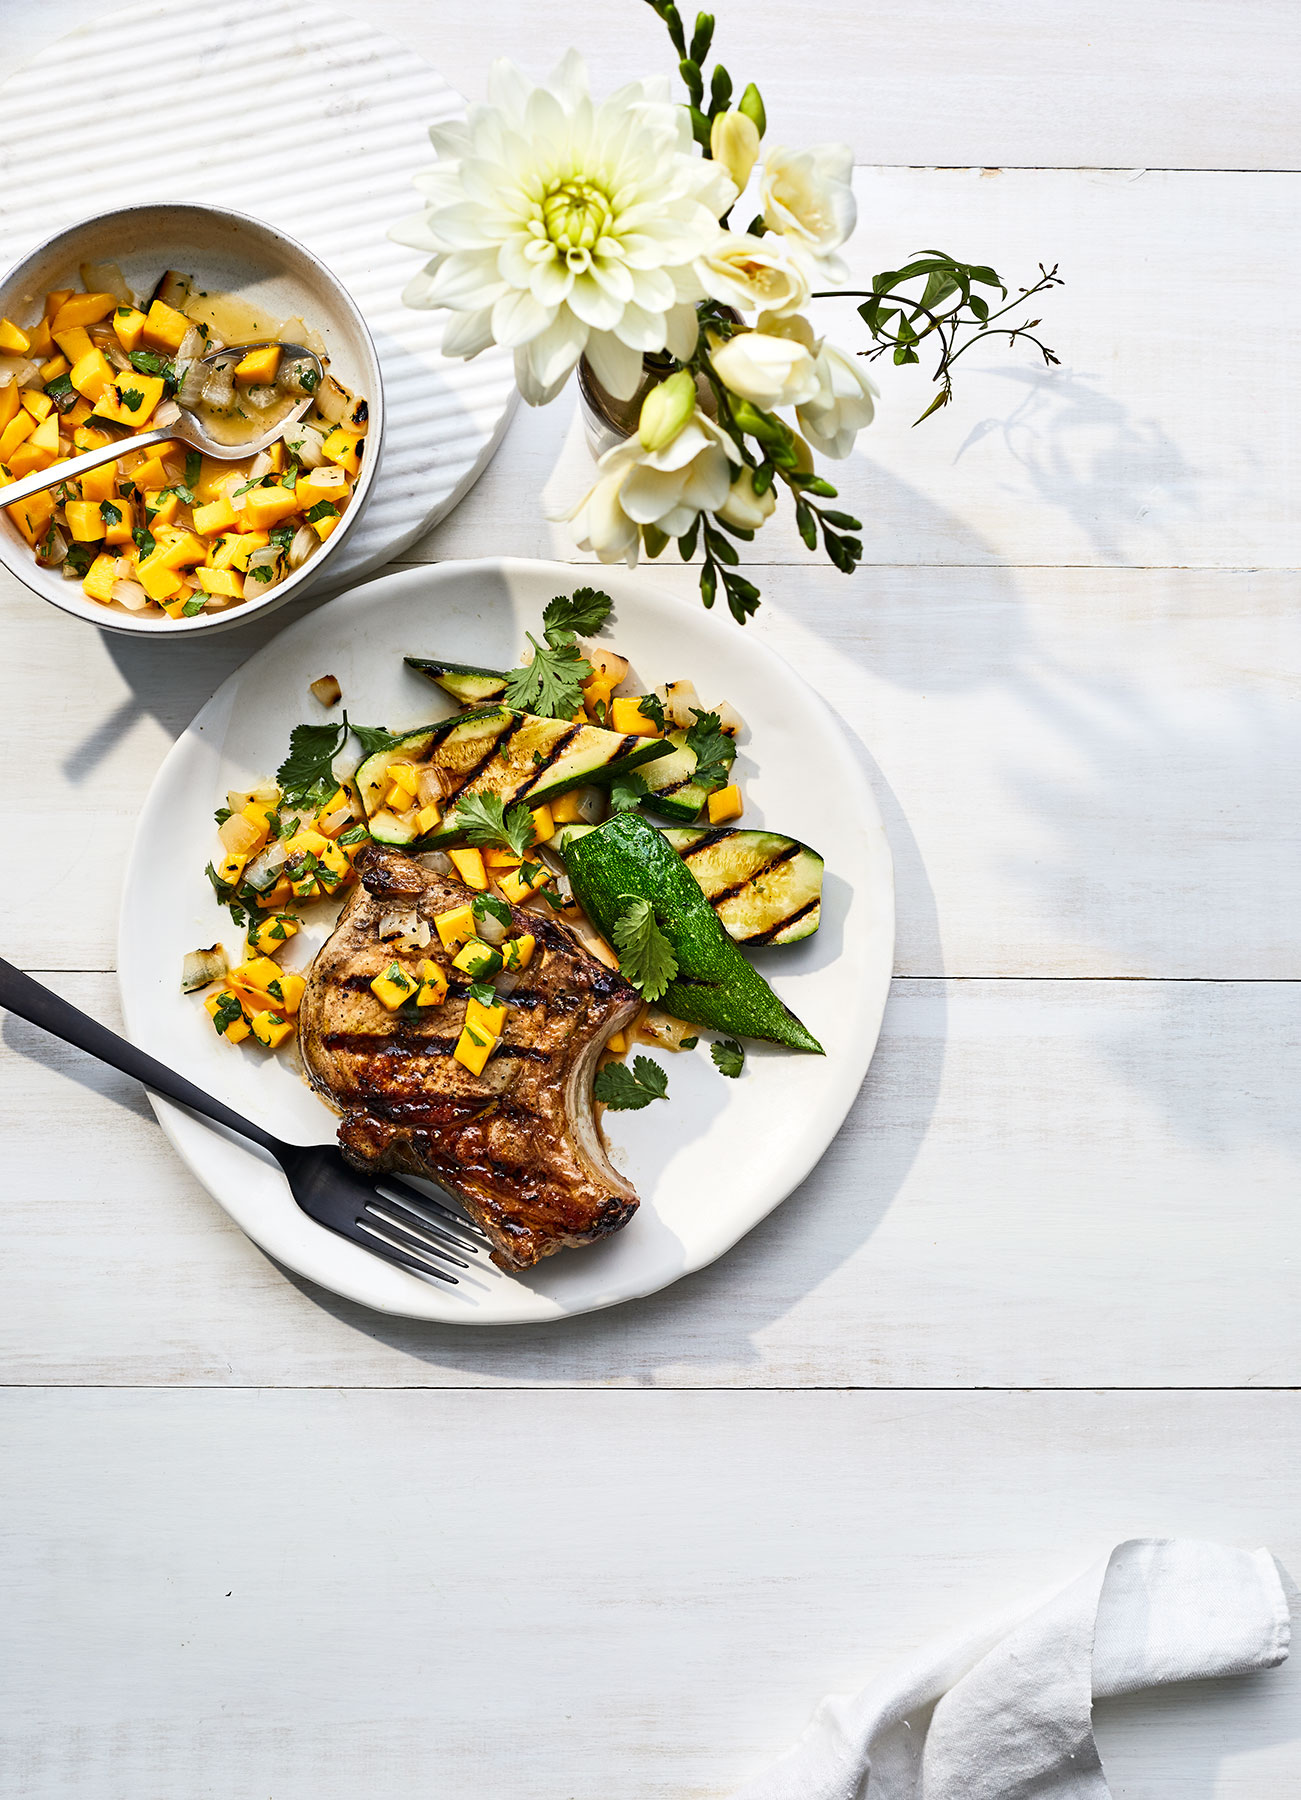 Grilled Pork Chops and Zucchini With Mango Salsa